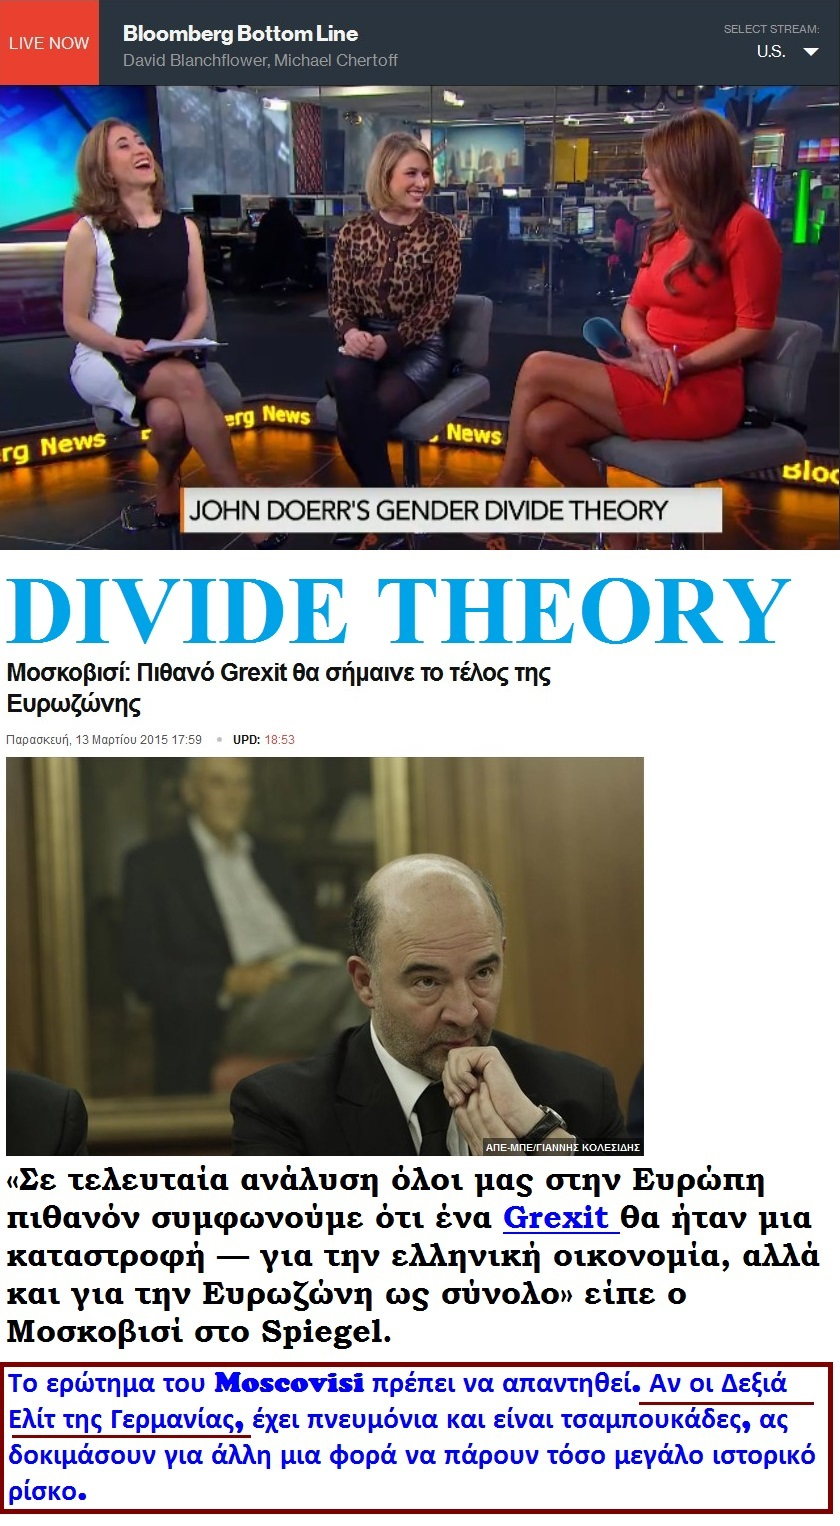 BLOOMBERG GREXIT MOSCOVISI DIVIDE THEORY TRISH LEGS 01 130315